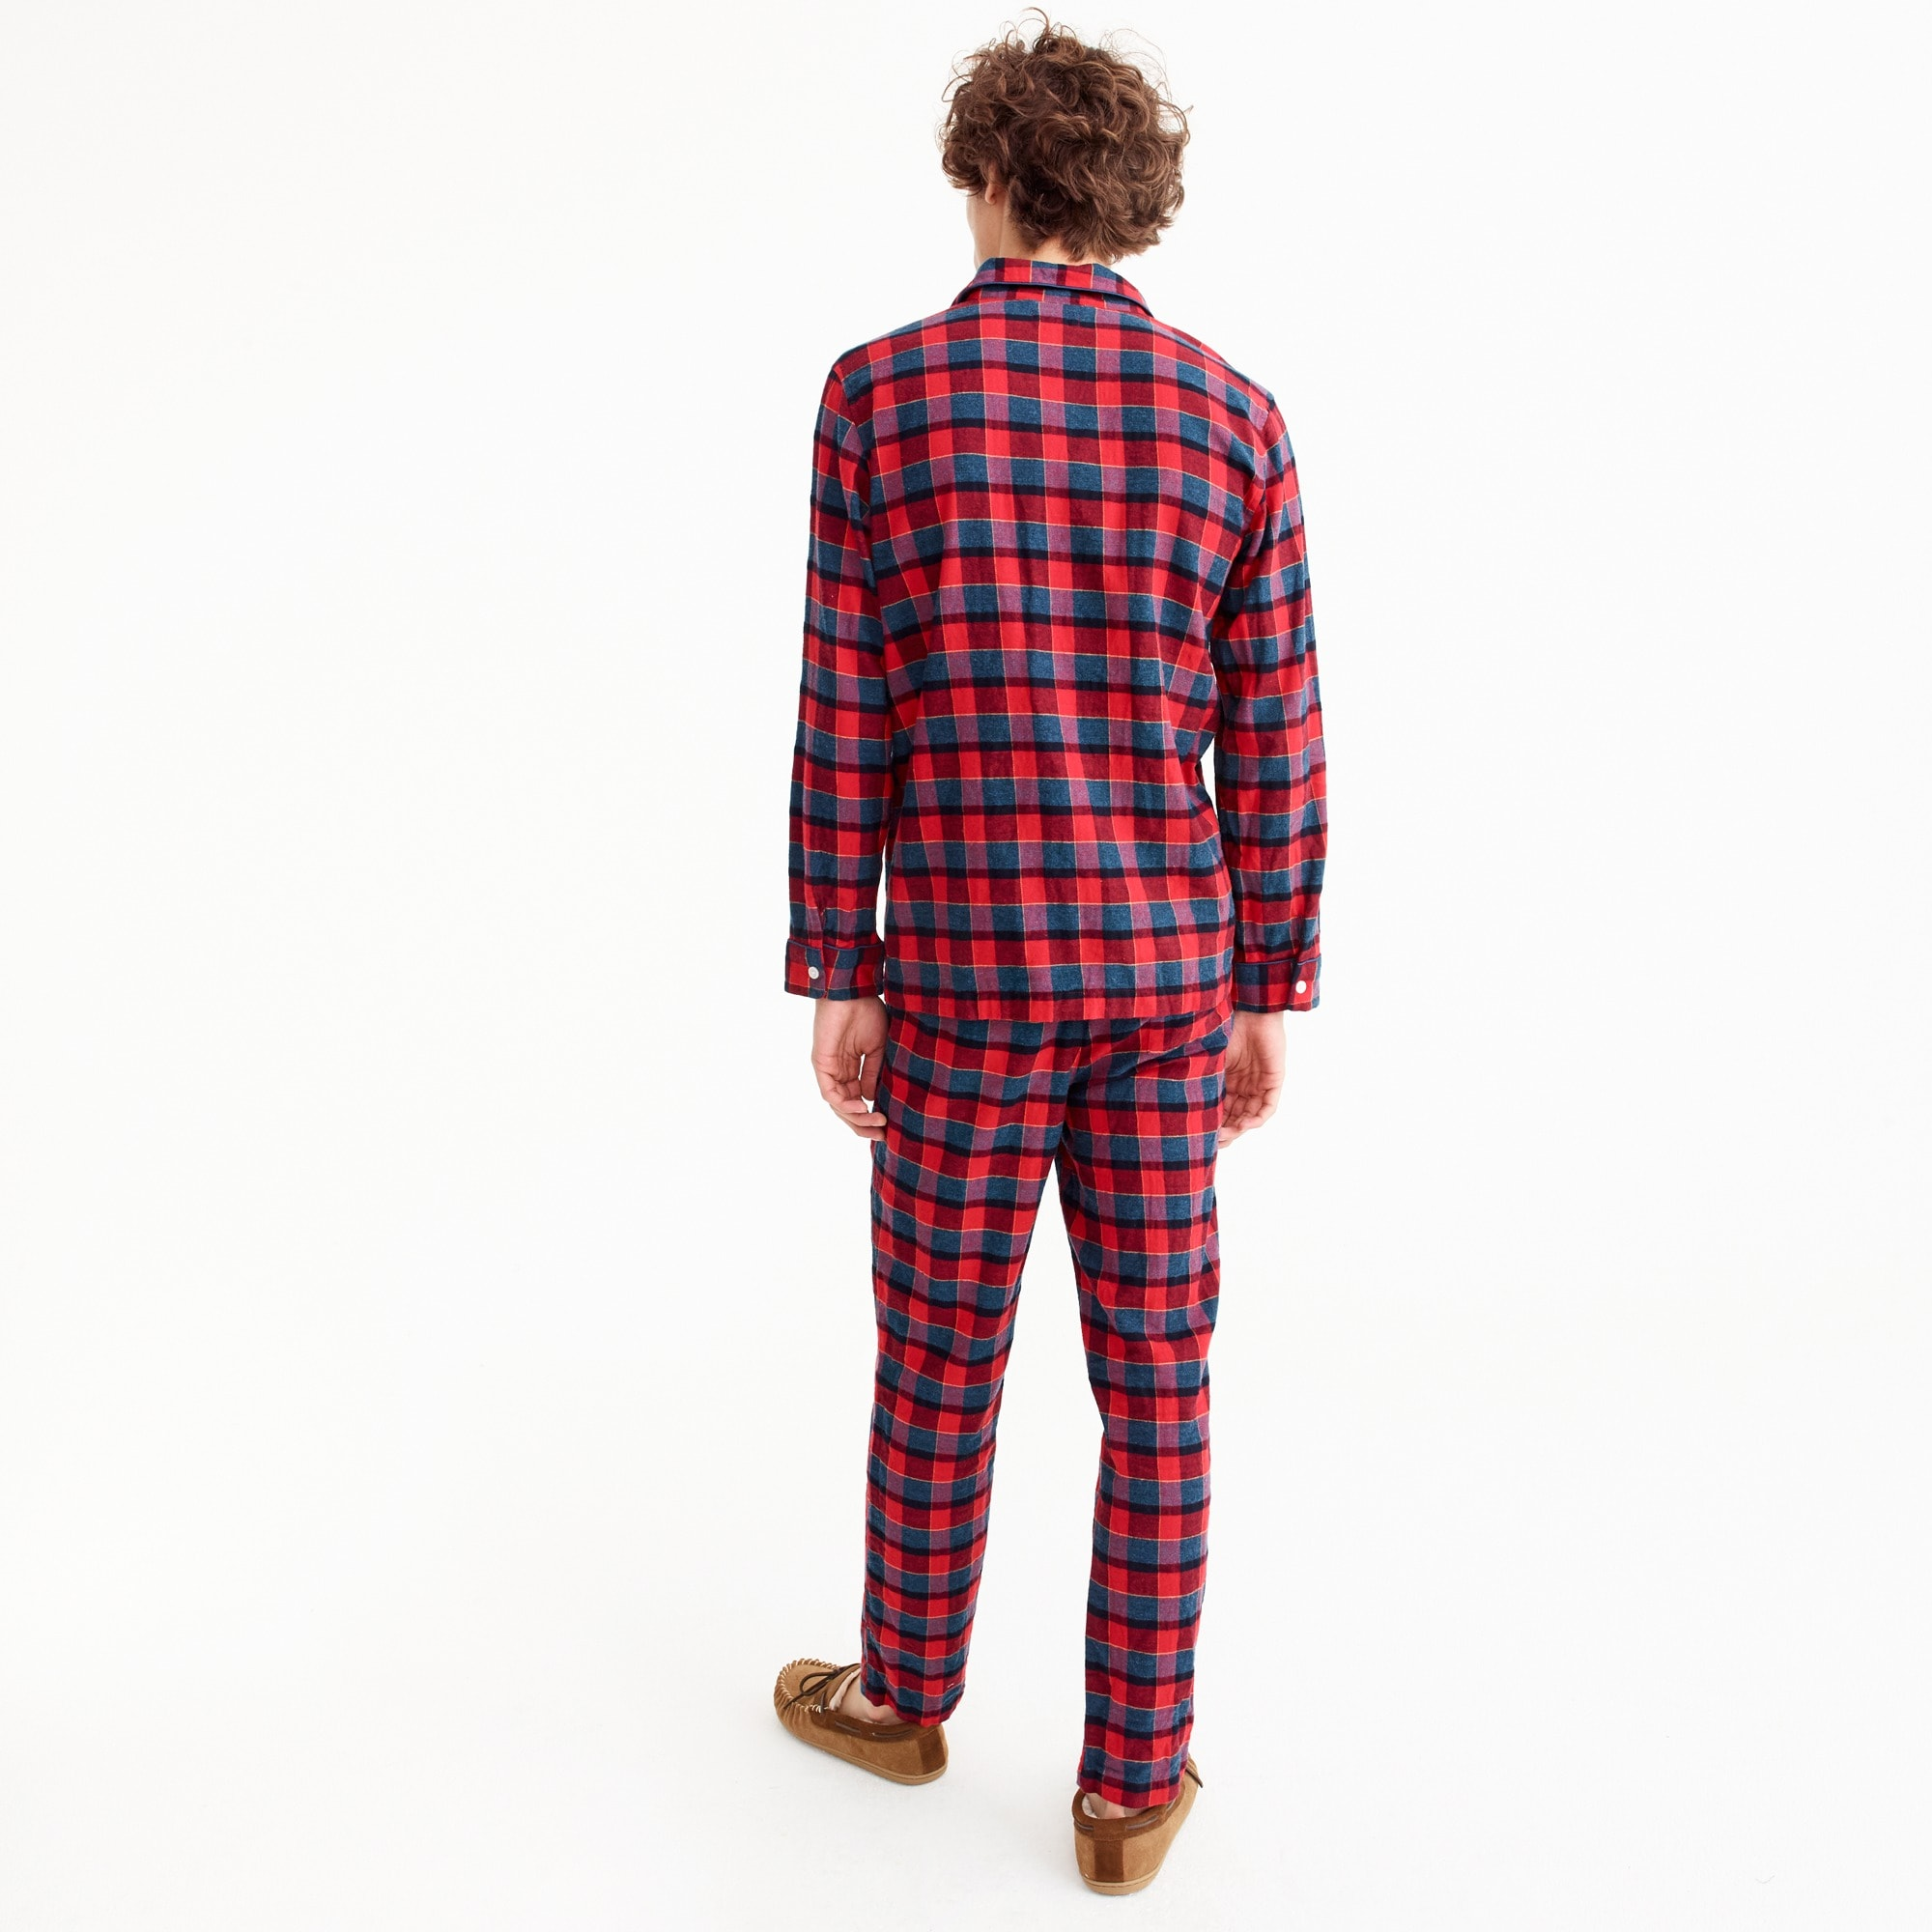 Image 2 for Pajama set in red and blue check